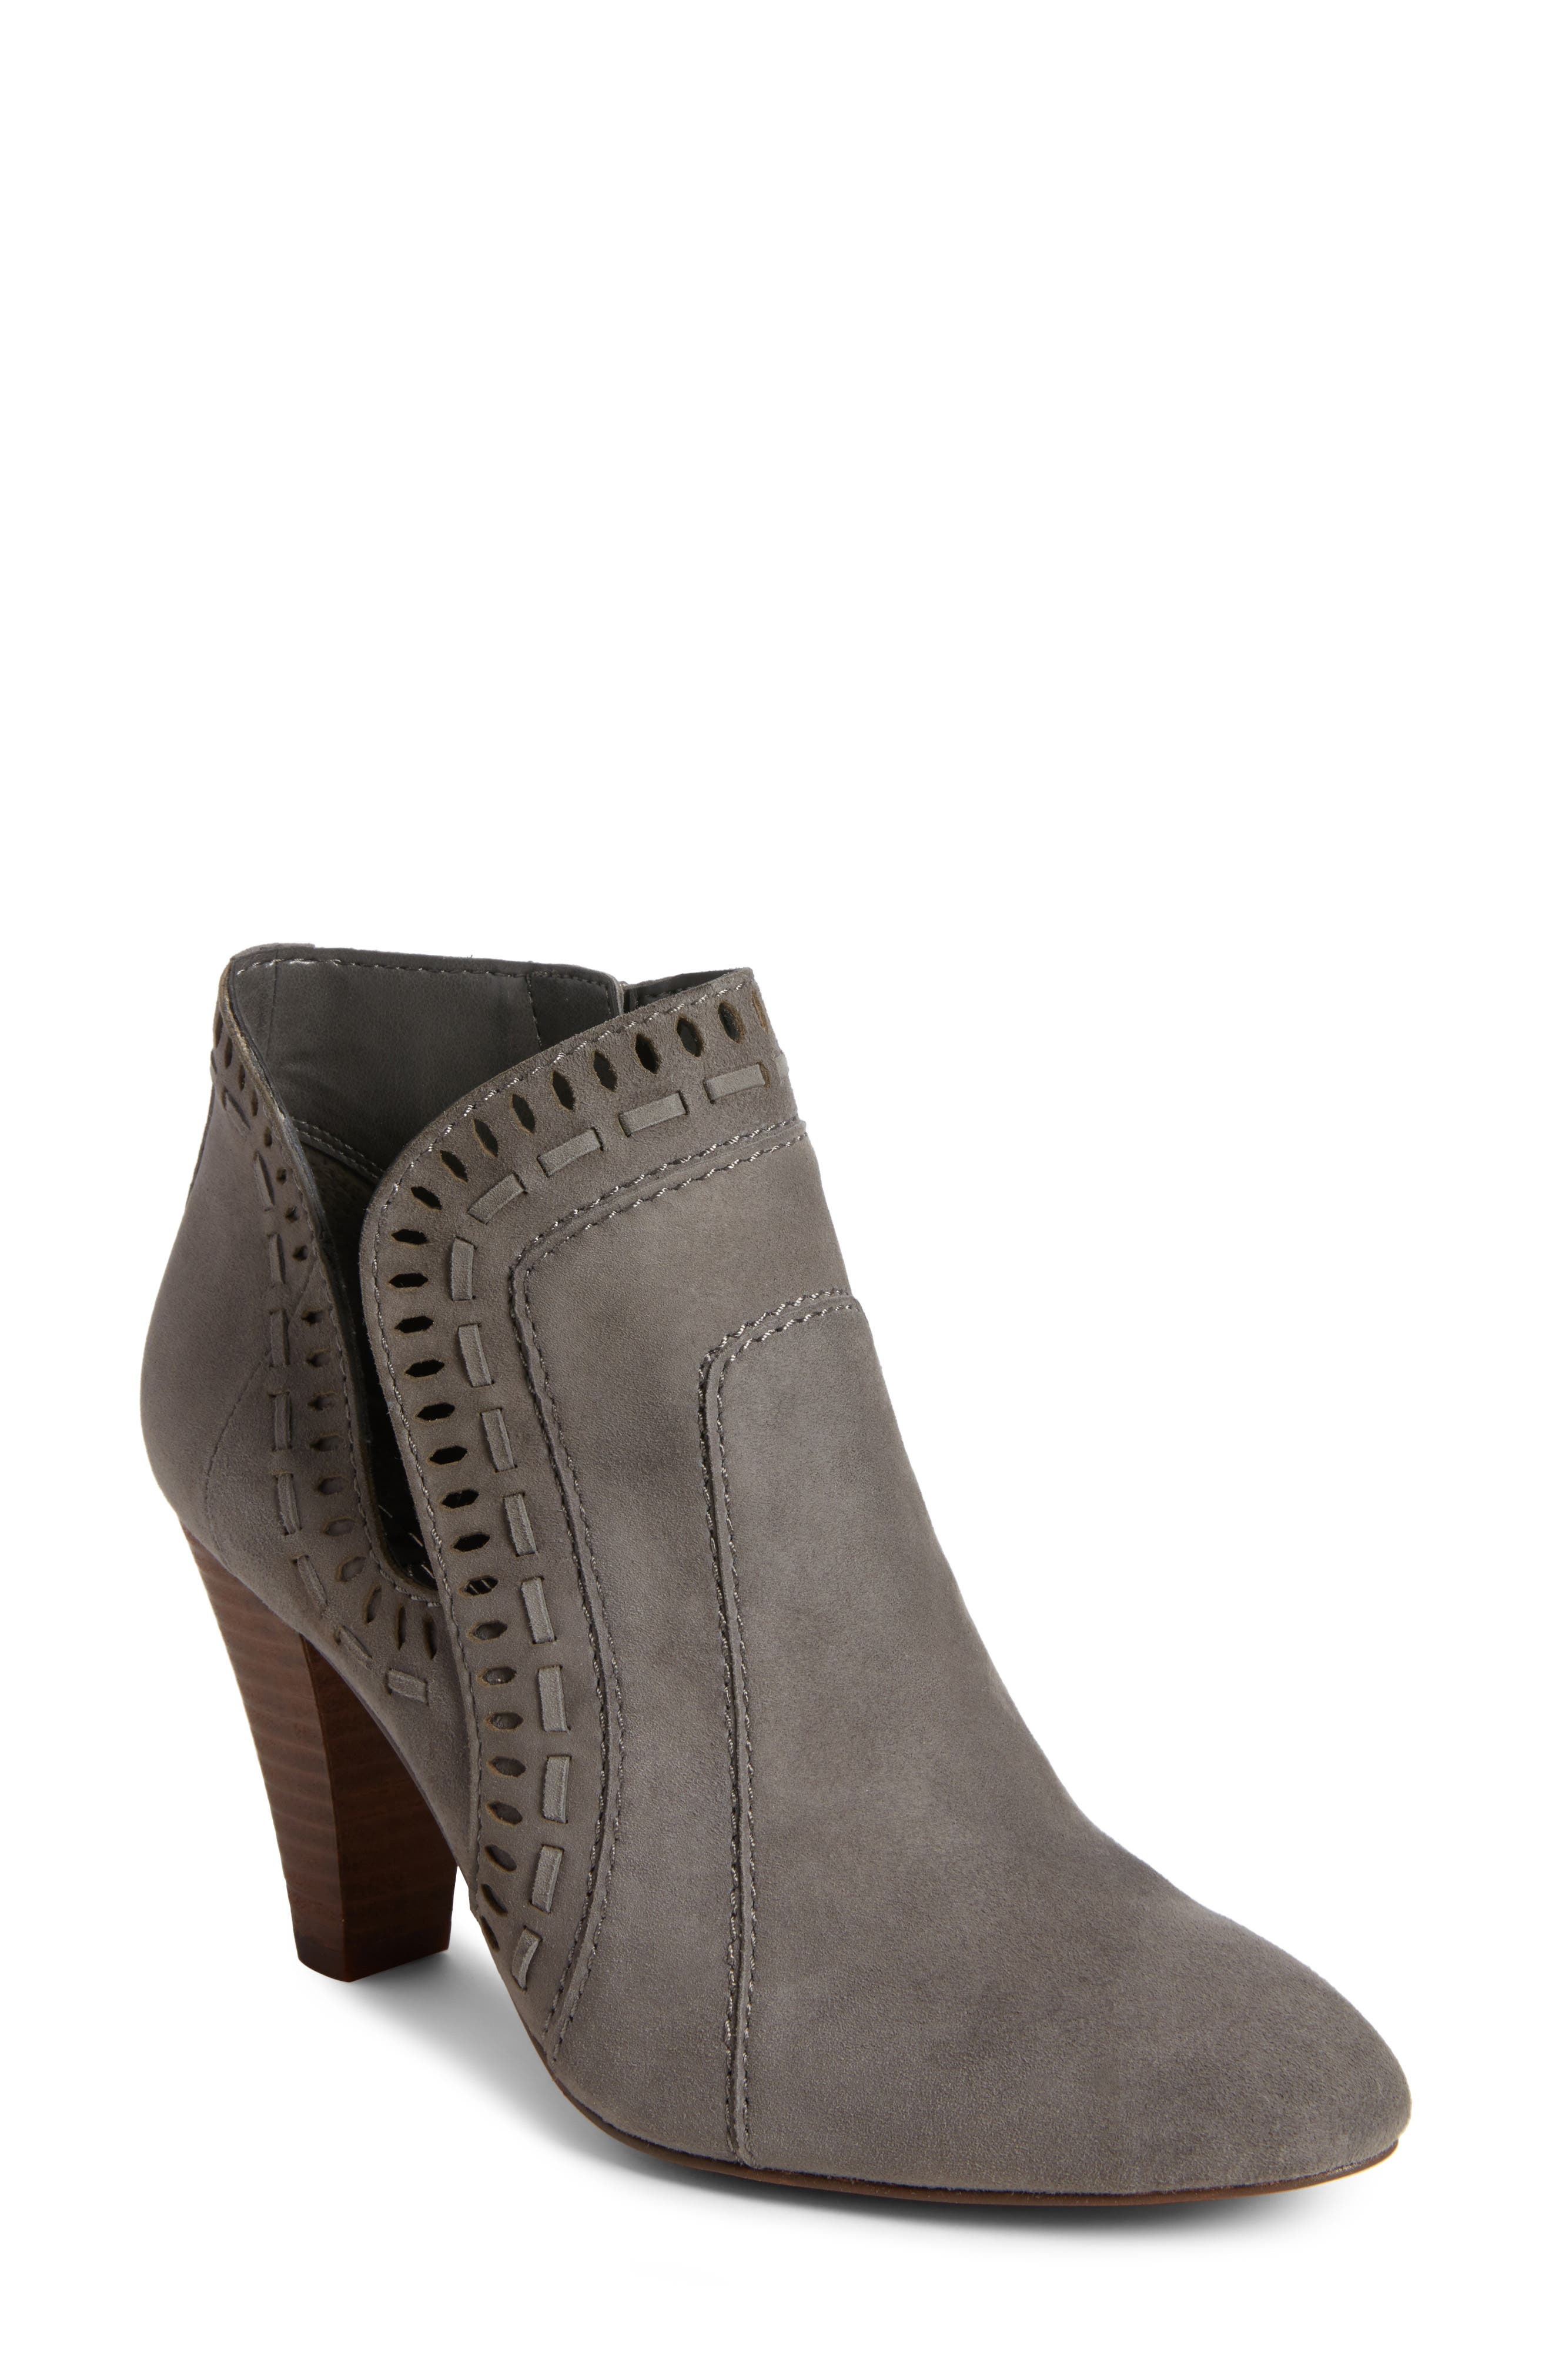 Reeista Bootie,                             Main thumbnail 1, color,                             GREYSTONE SUEDE